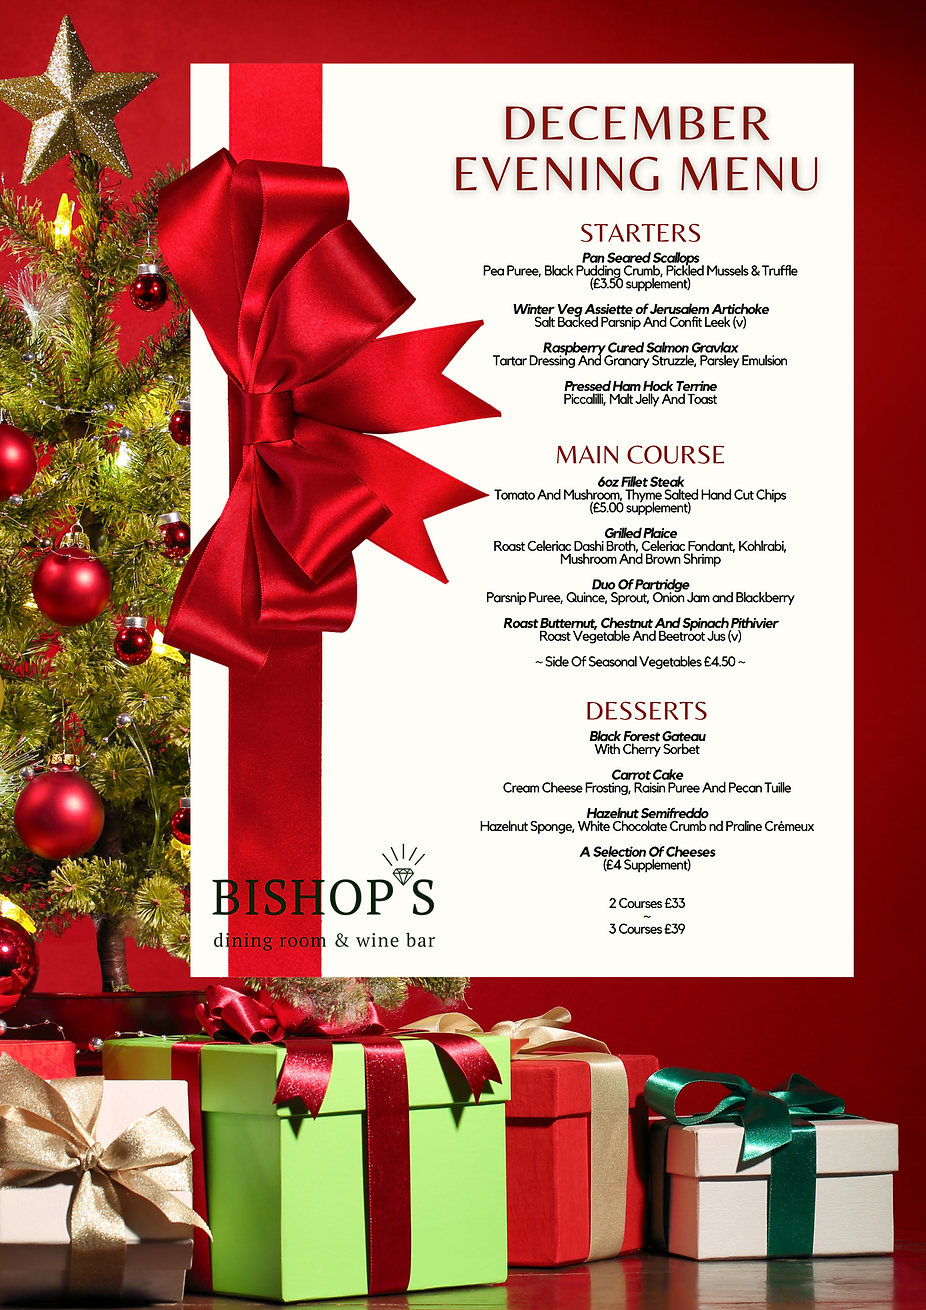 Bishop's December Evening Menu.png